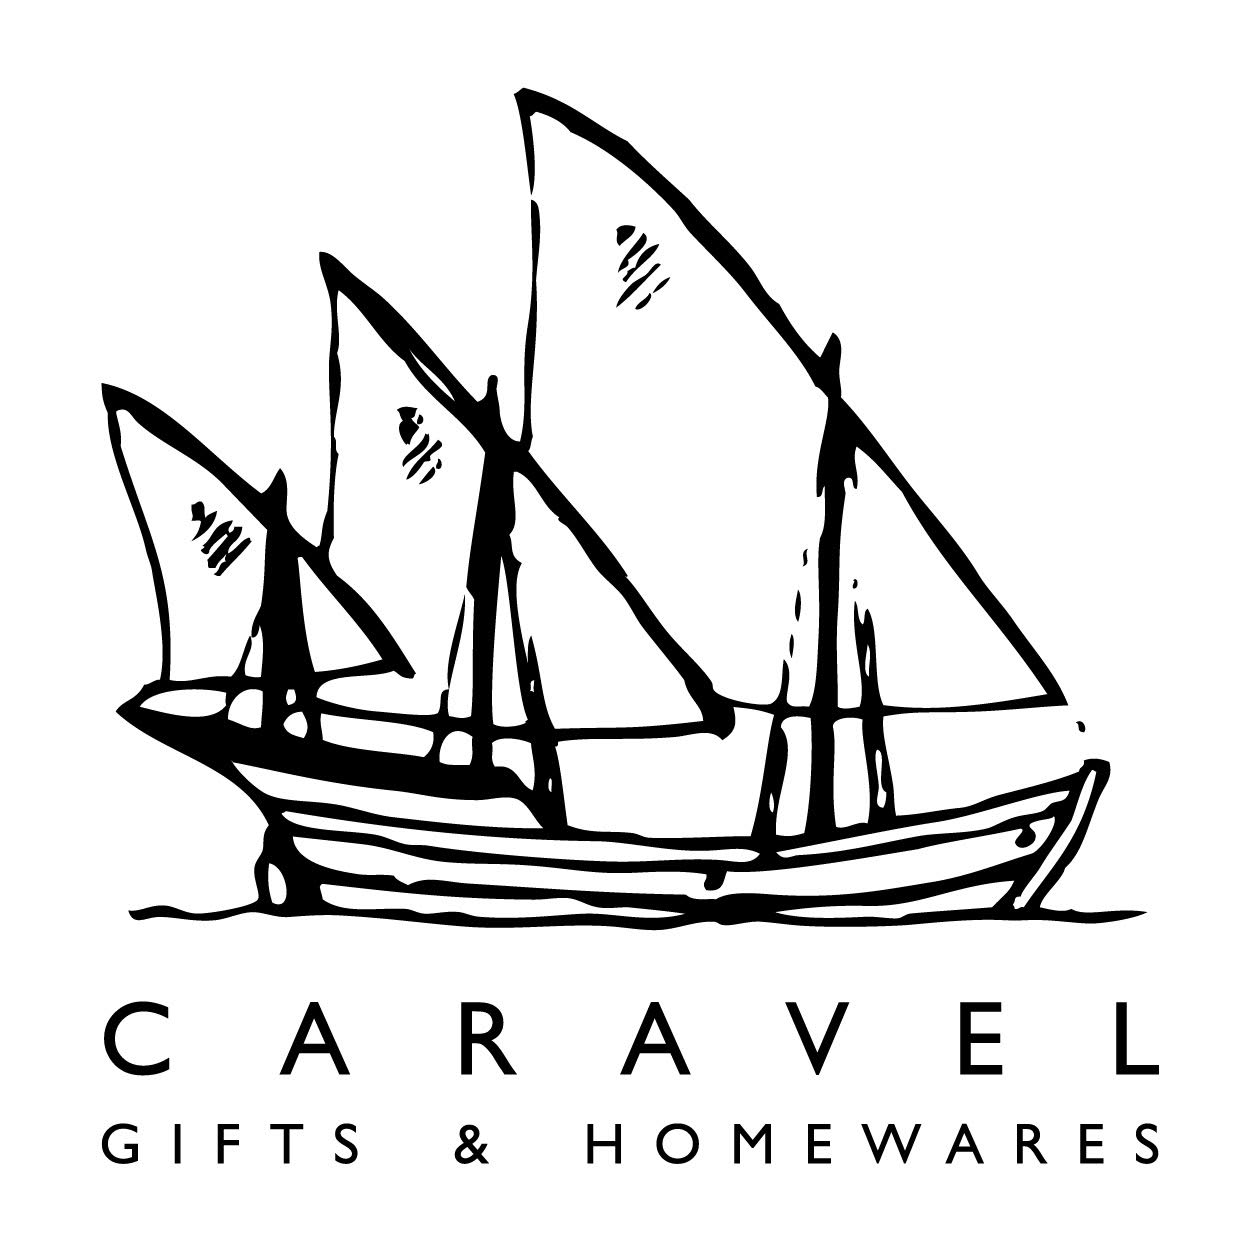 Caravel Gifts and Homewares